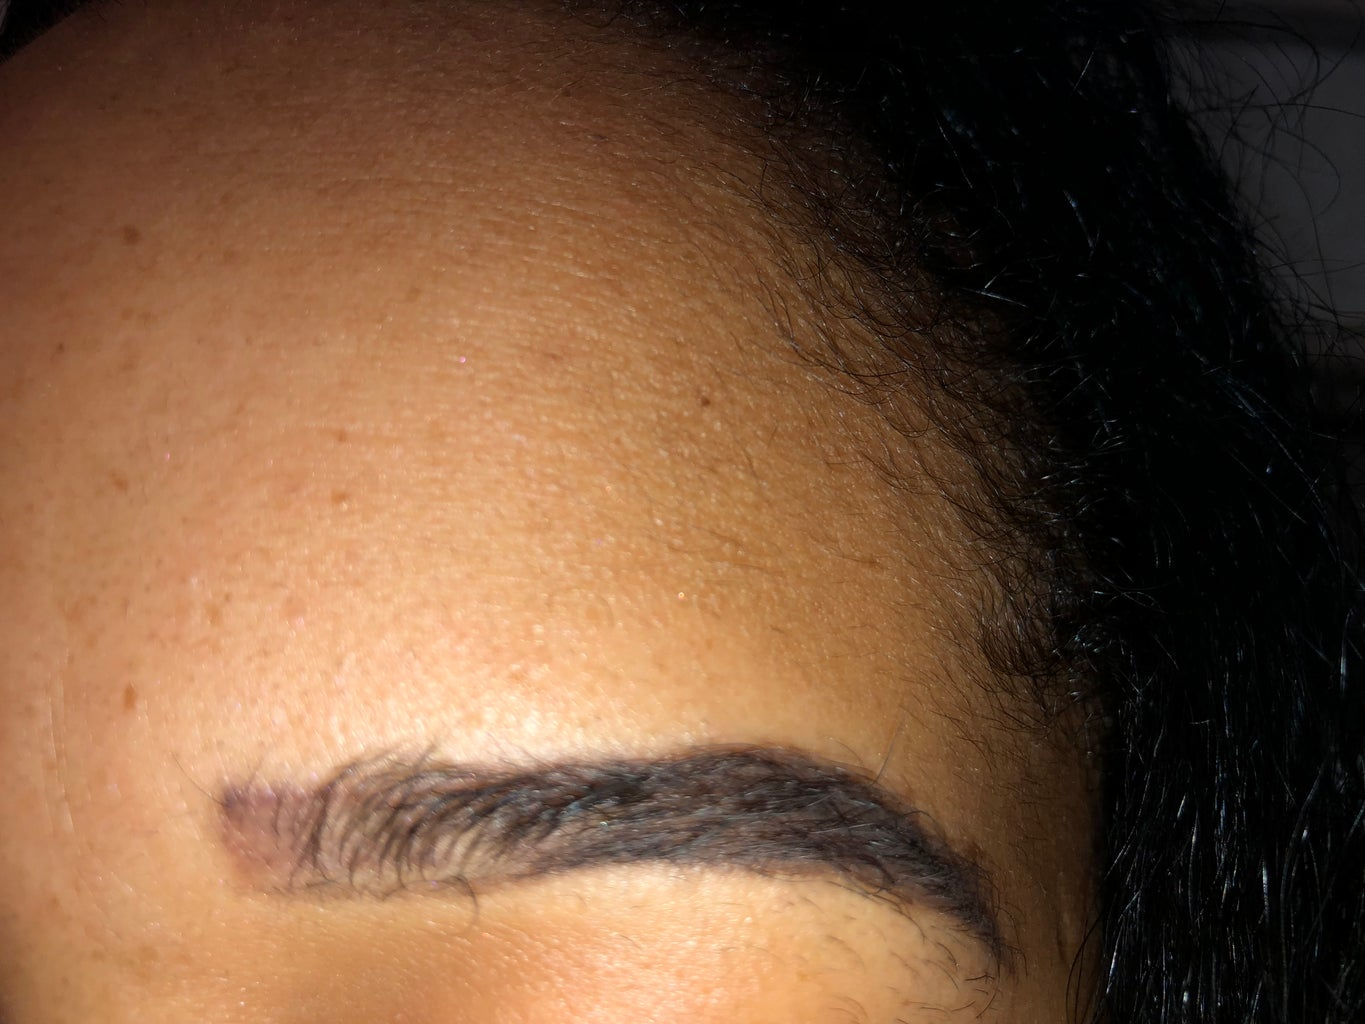 Doing the Beginning of Your Eyebrow (the Lighter Part)